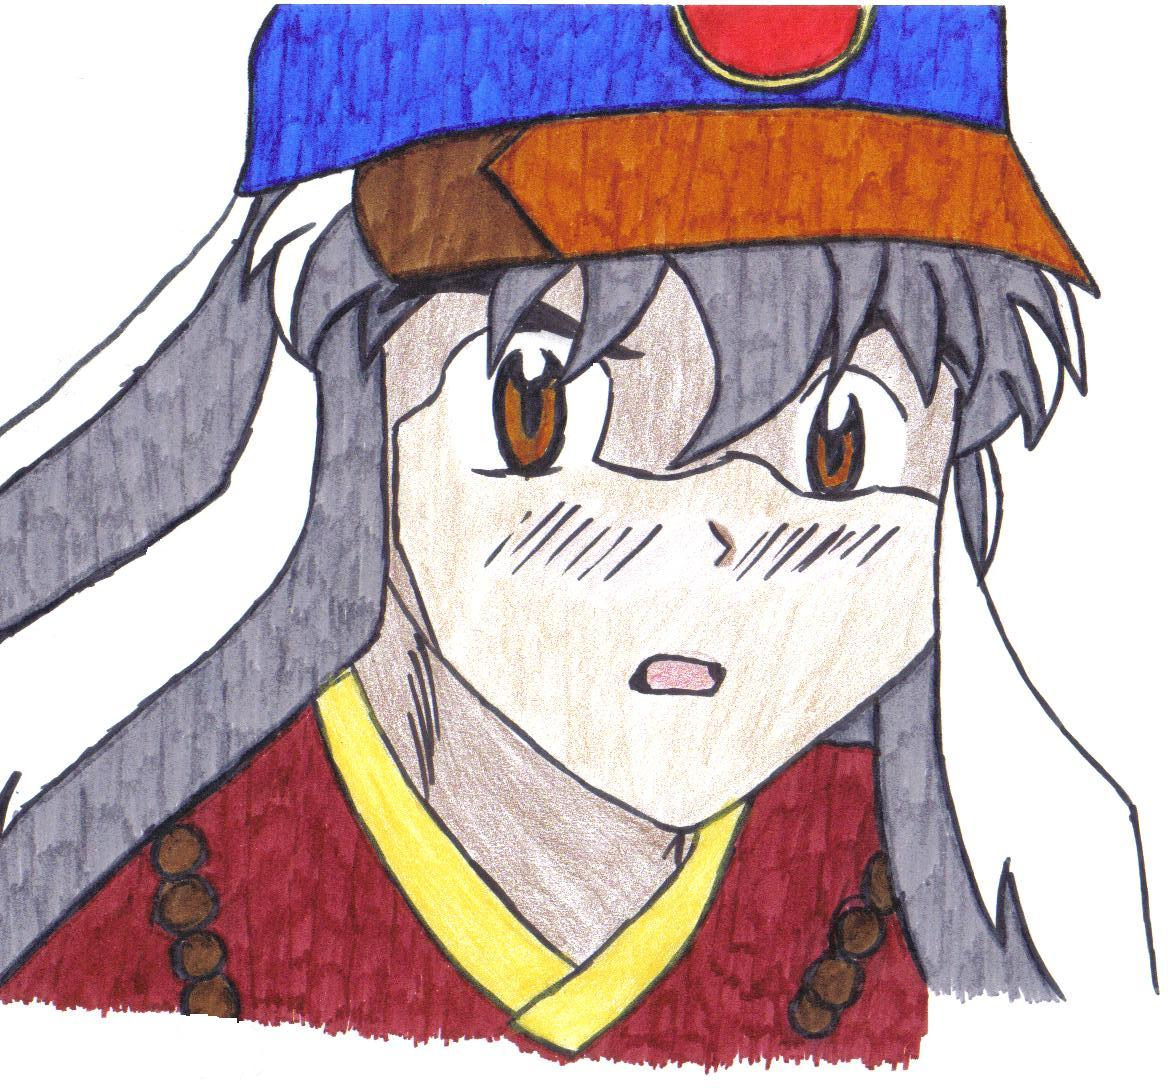 inuyasha hat dude by shipp_shippo